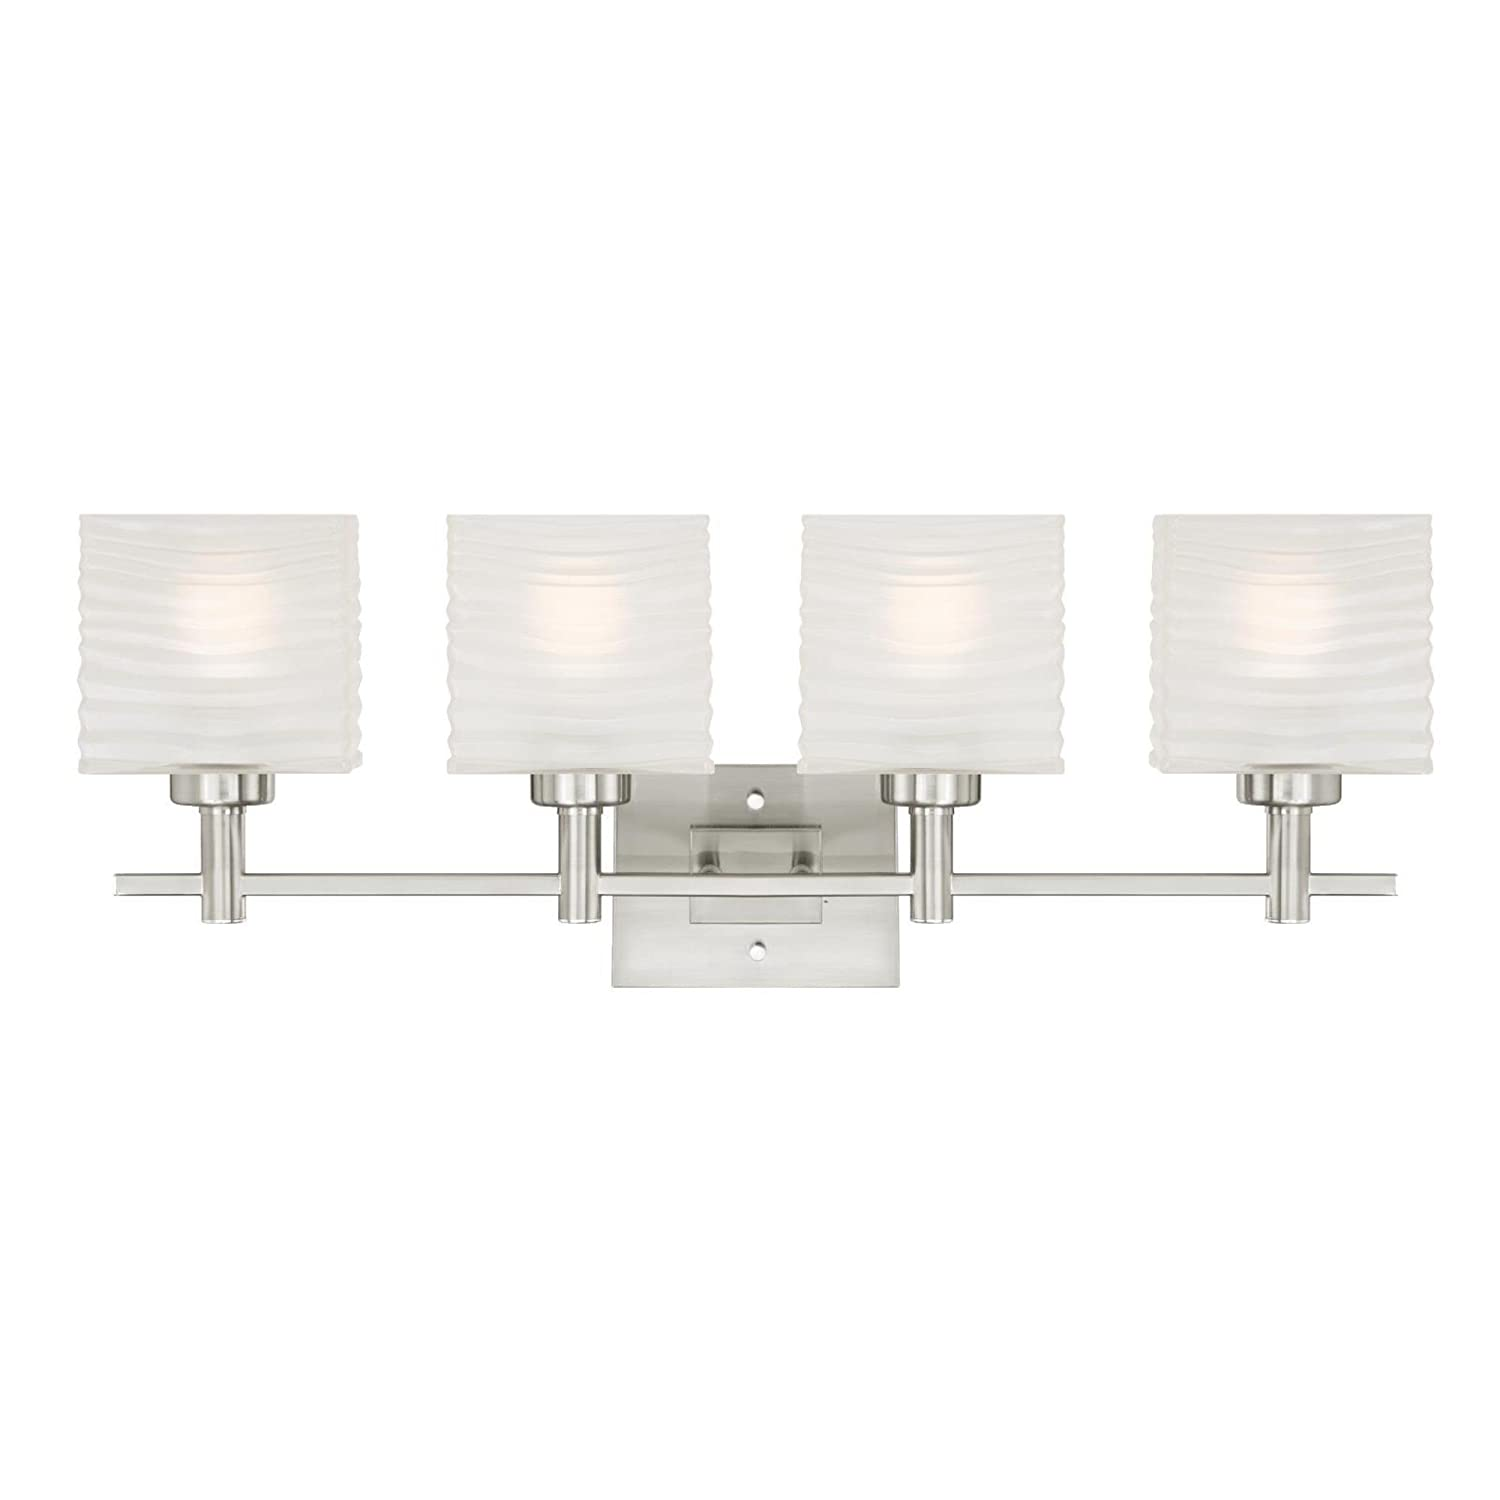 6304100 Alexander Four-Light Indoor Wall Fixture, Brushed Nickel Finish with Rippled White Glazed Glass